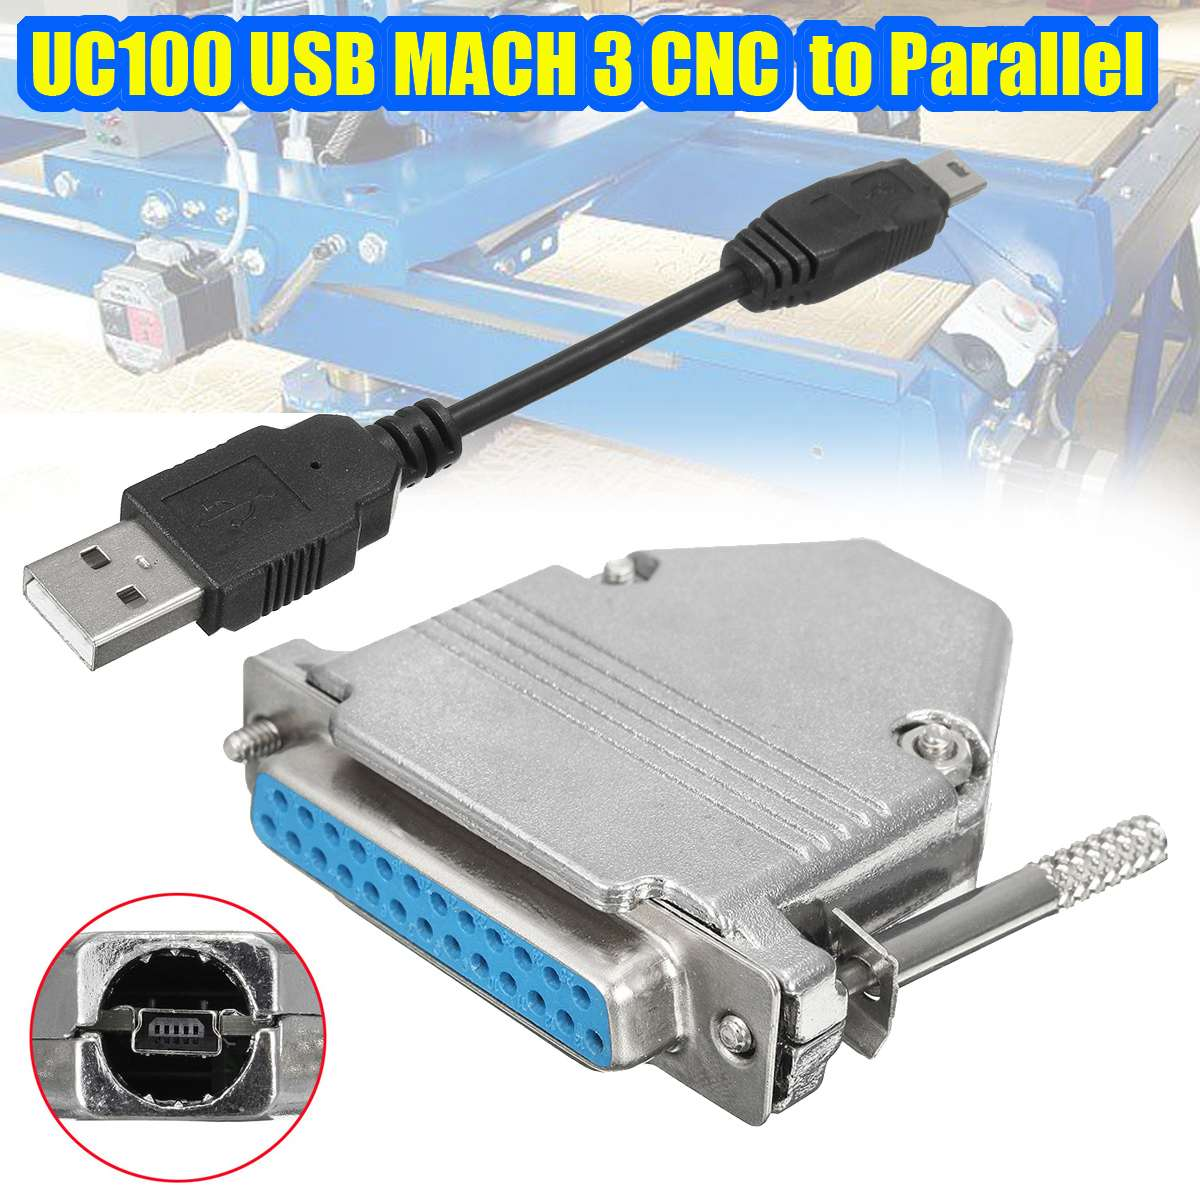 CNC Engraving Machine Parts USB to Parallel Adapter CNC Router Controller For MACH3-LY-USB100 With USB LineCNC Engraving Machine Parts USB to Parallel Adapter CNC Router Controller For MACH3-LY-USB100 With USB Line